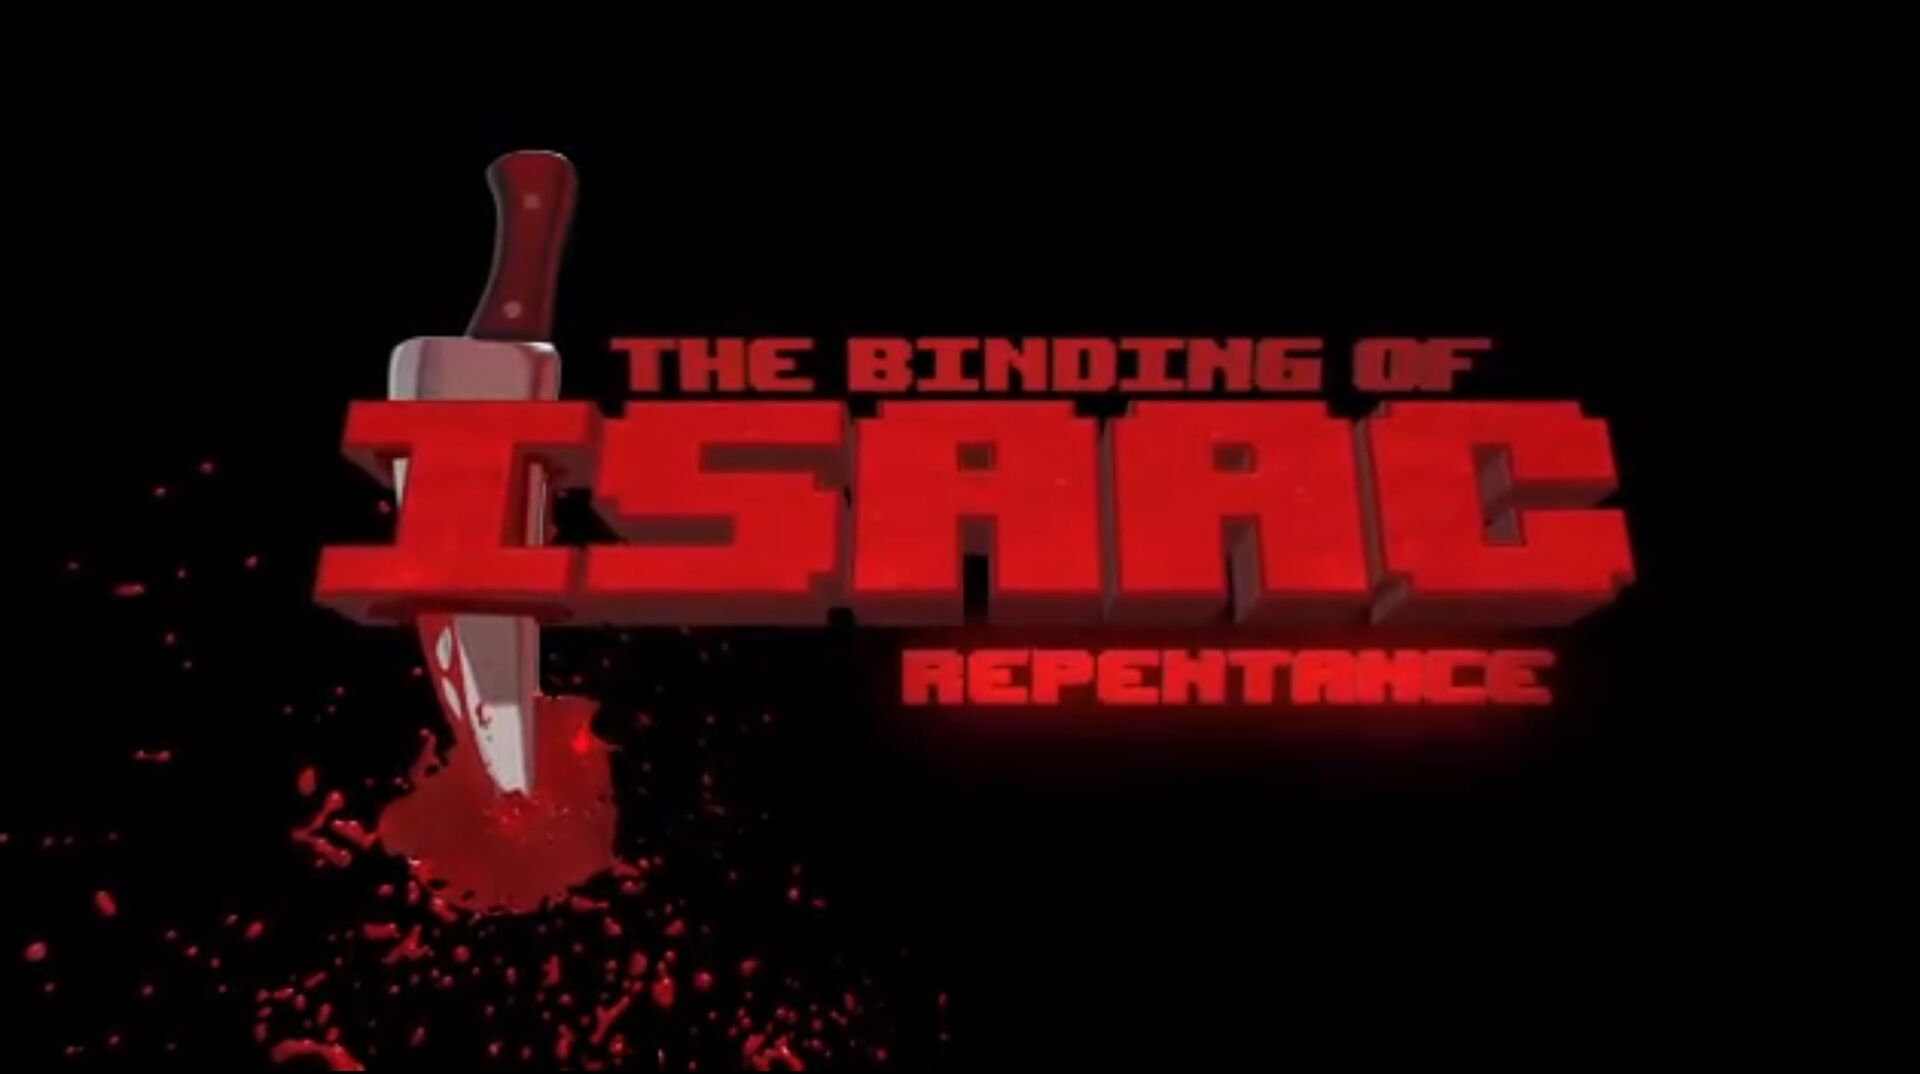 The Binding of Isaac: Repentance announced - but what is it